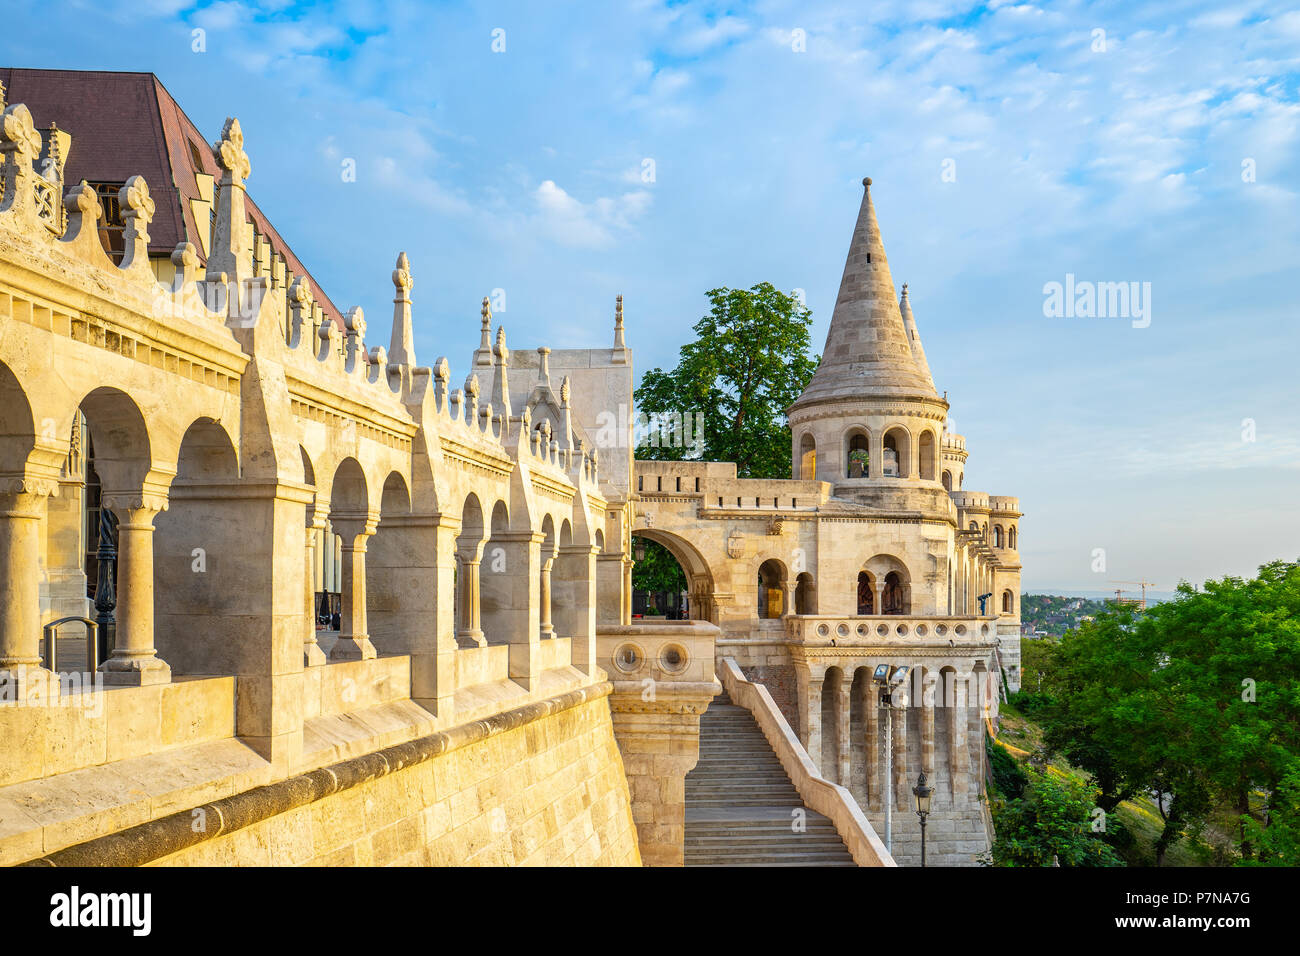 Fisherman's Bastion in Budapest city, Hungary. Stock Photo